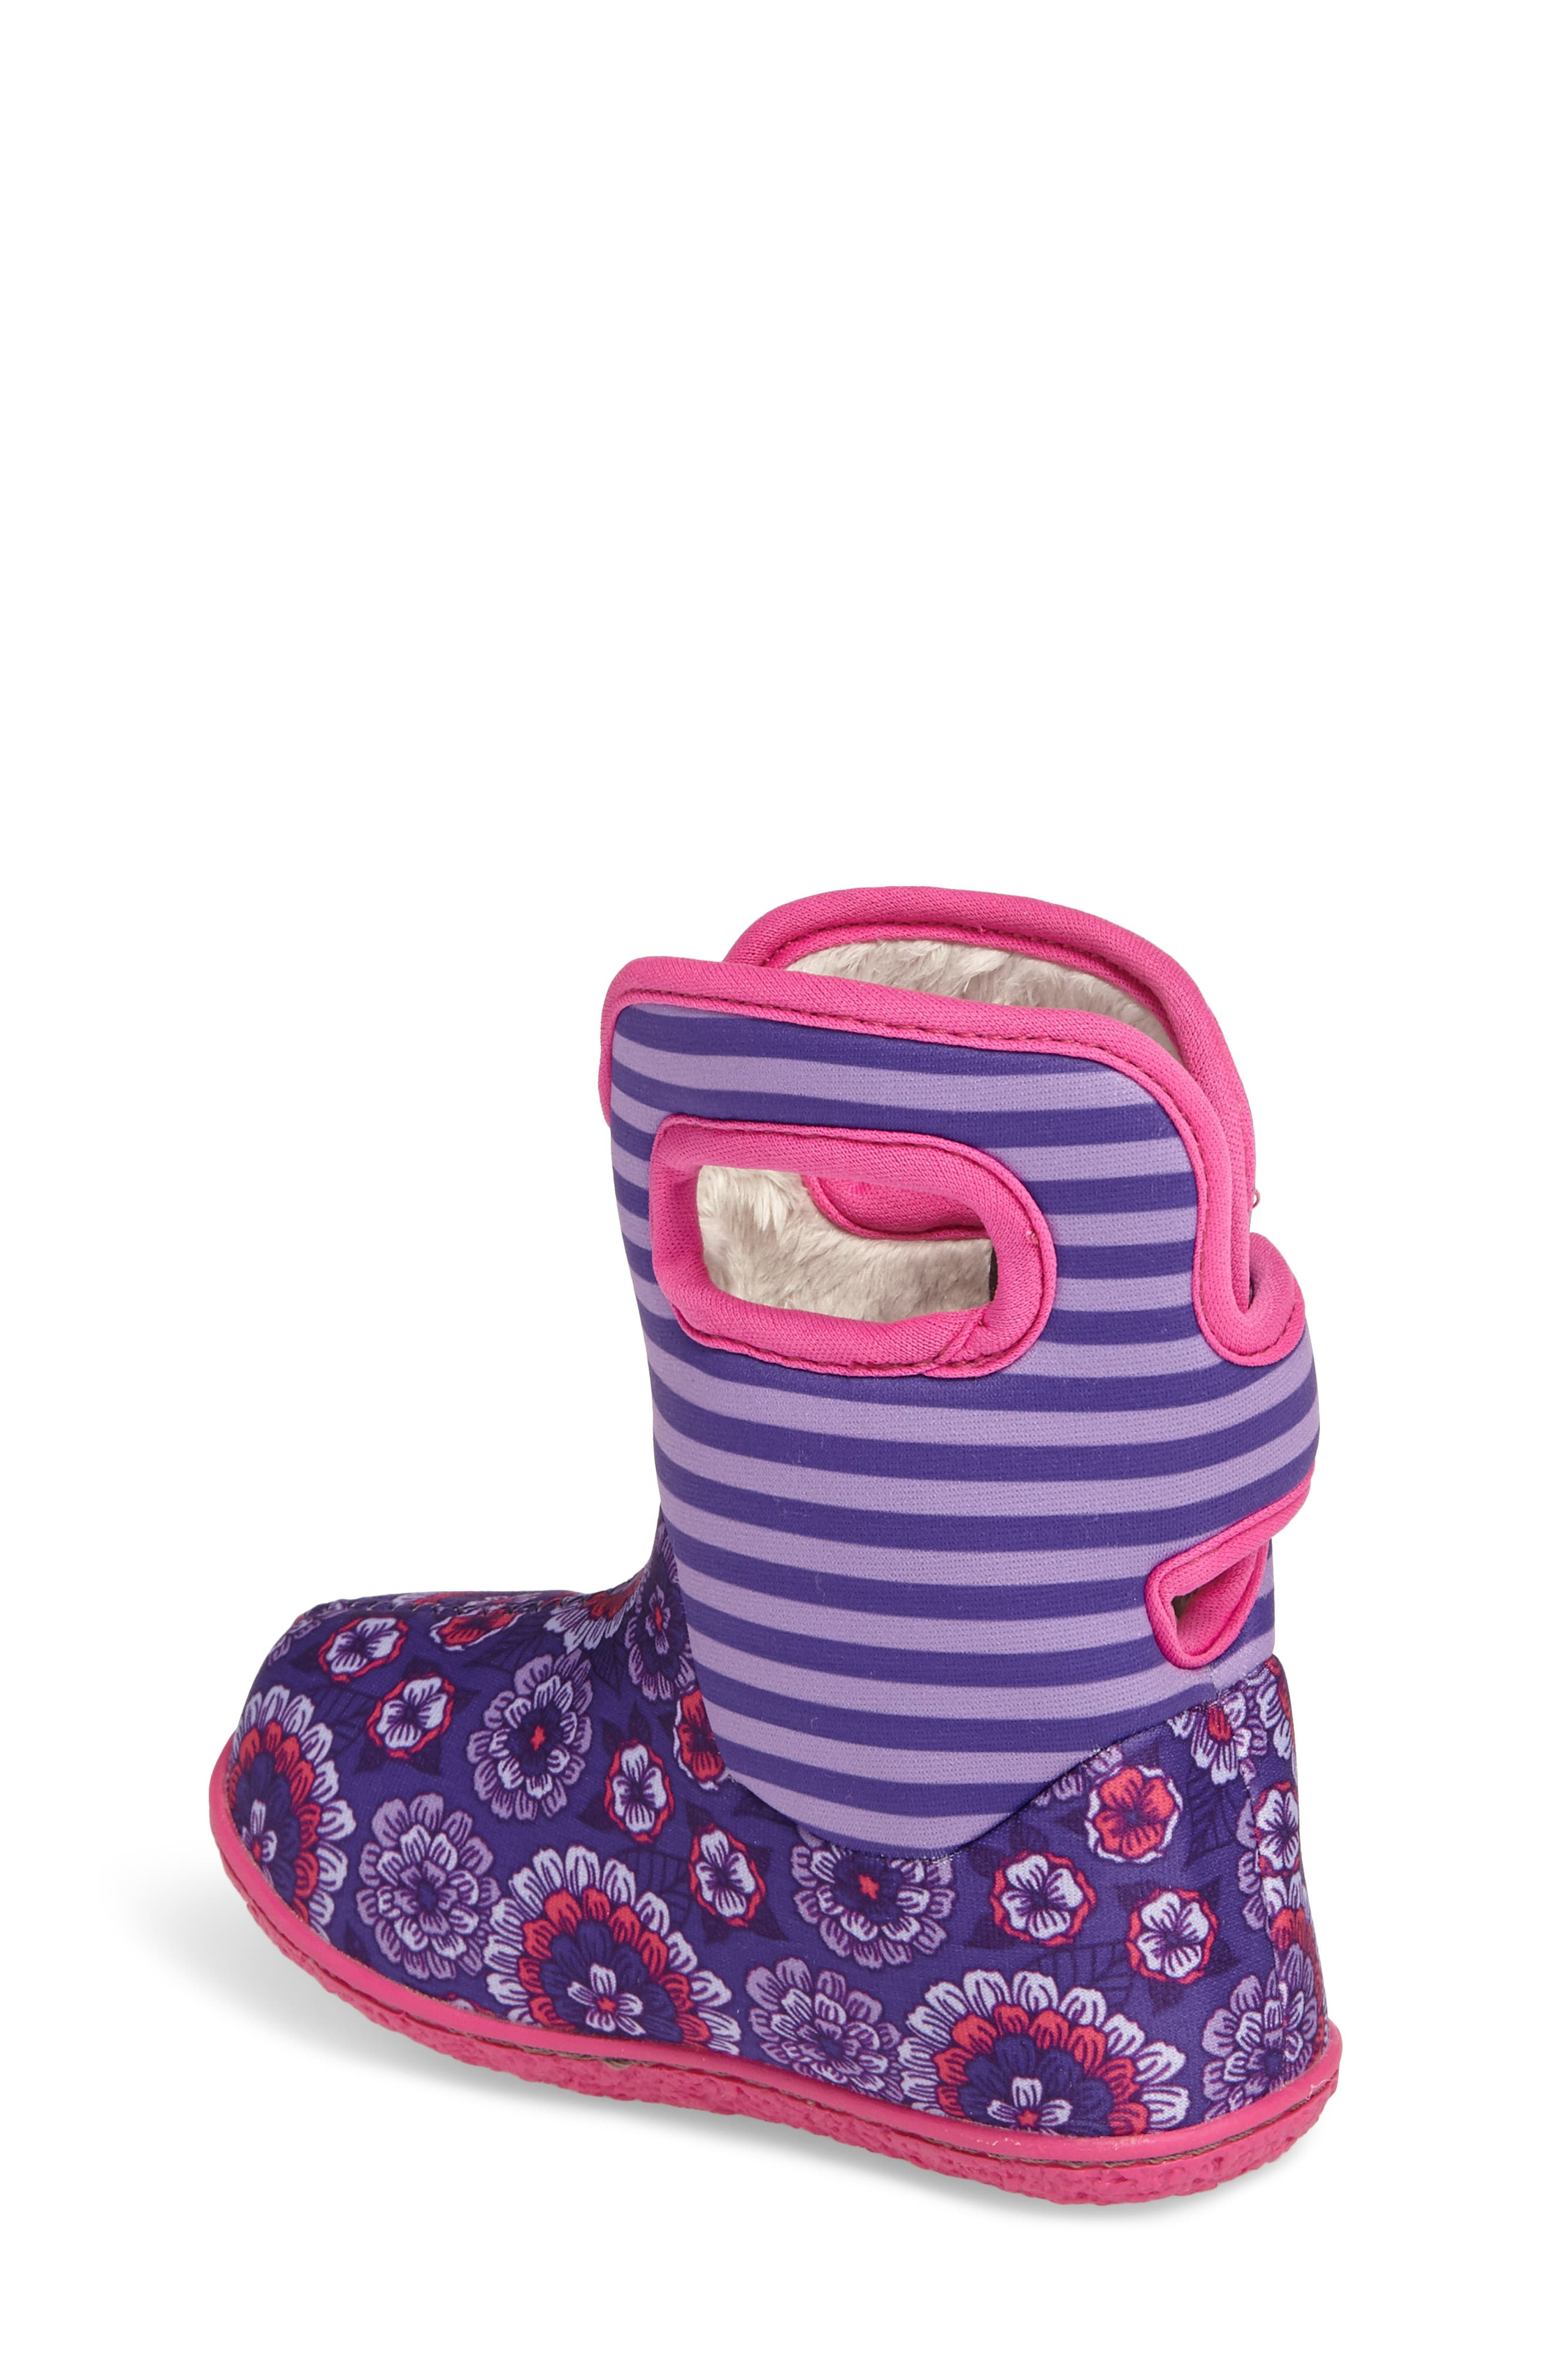 Baby Bogs Classic Pansies Washable Insulated Waterproof Boot,                             Alternate thumbnail 2, color,                             PURPLE MULTI